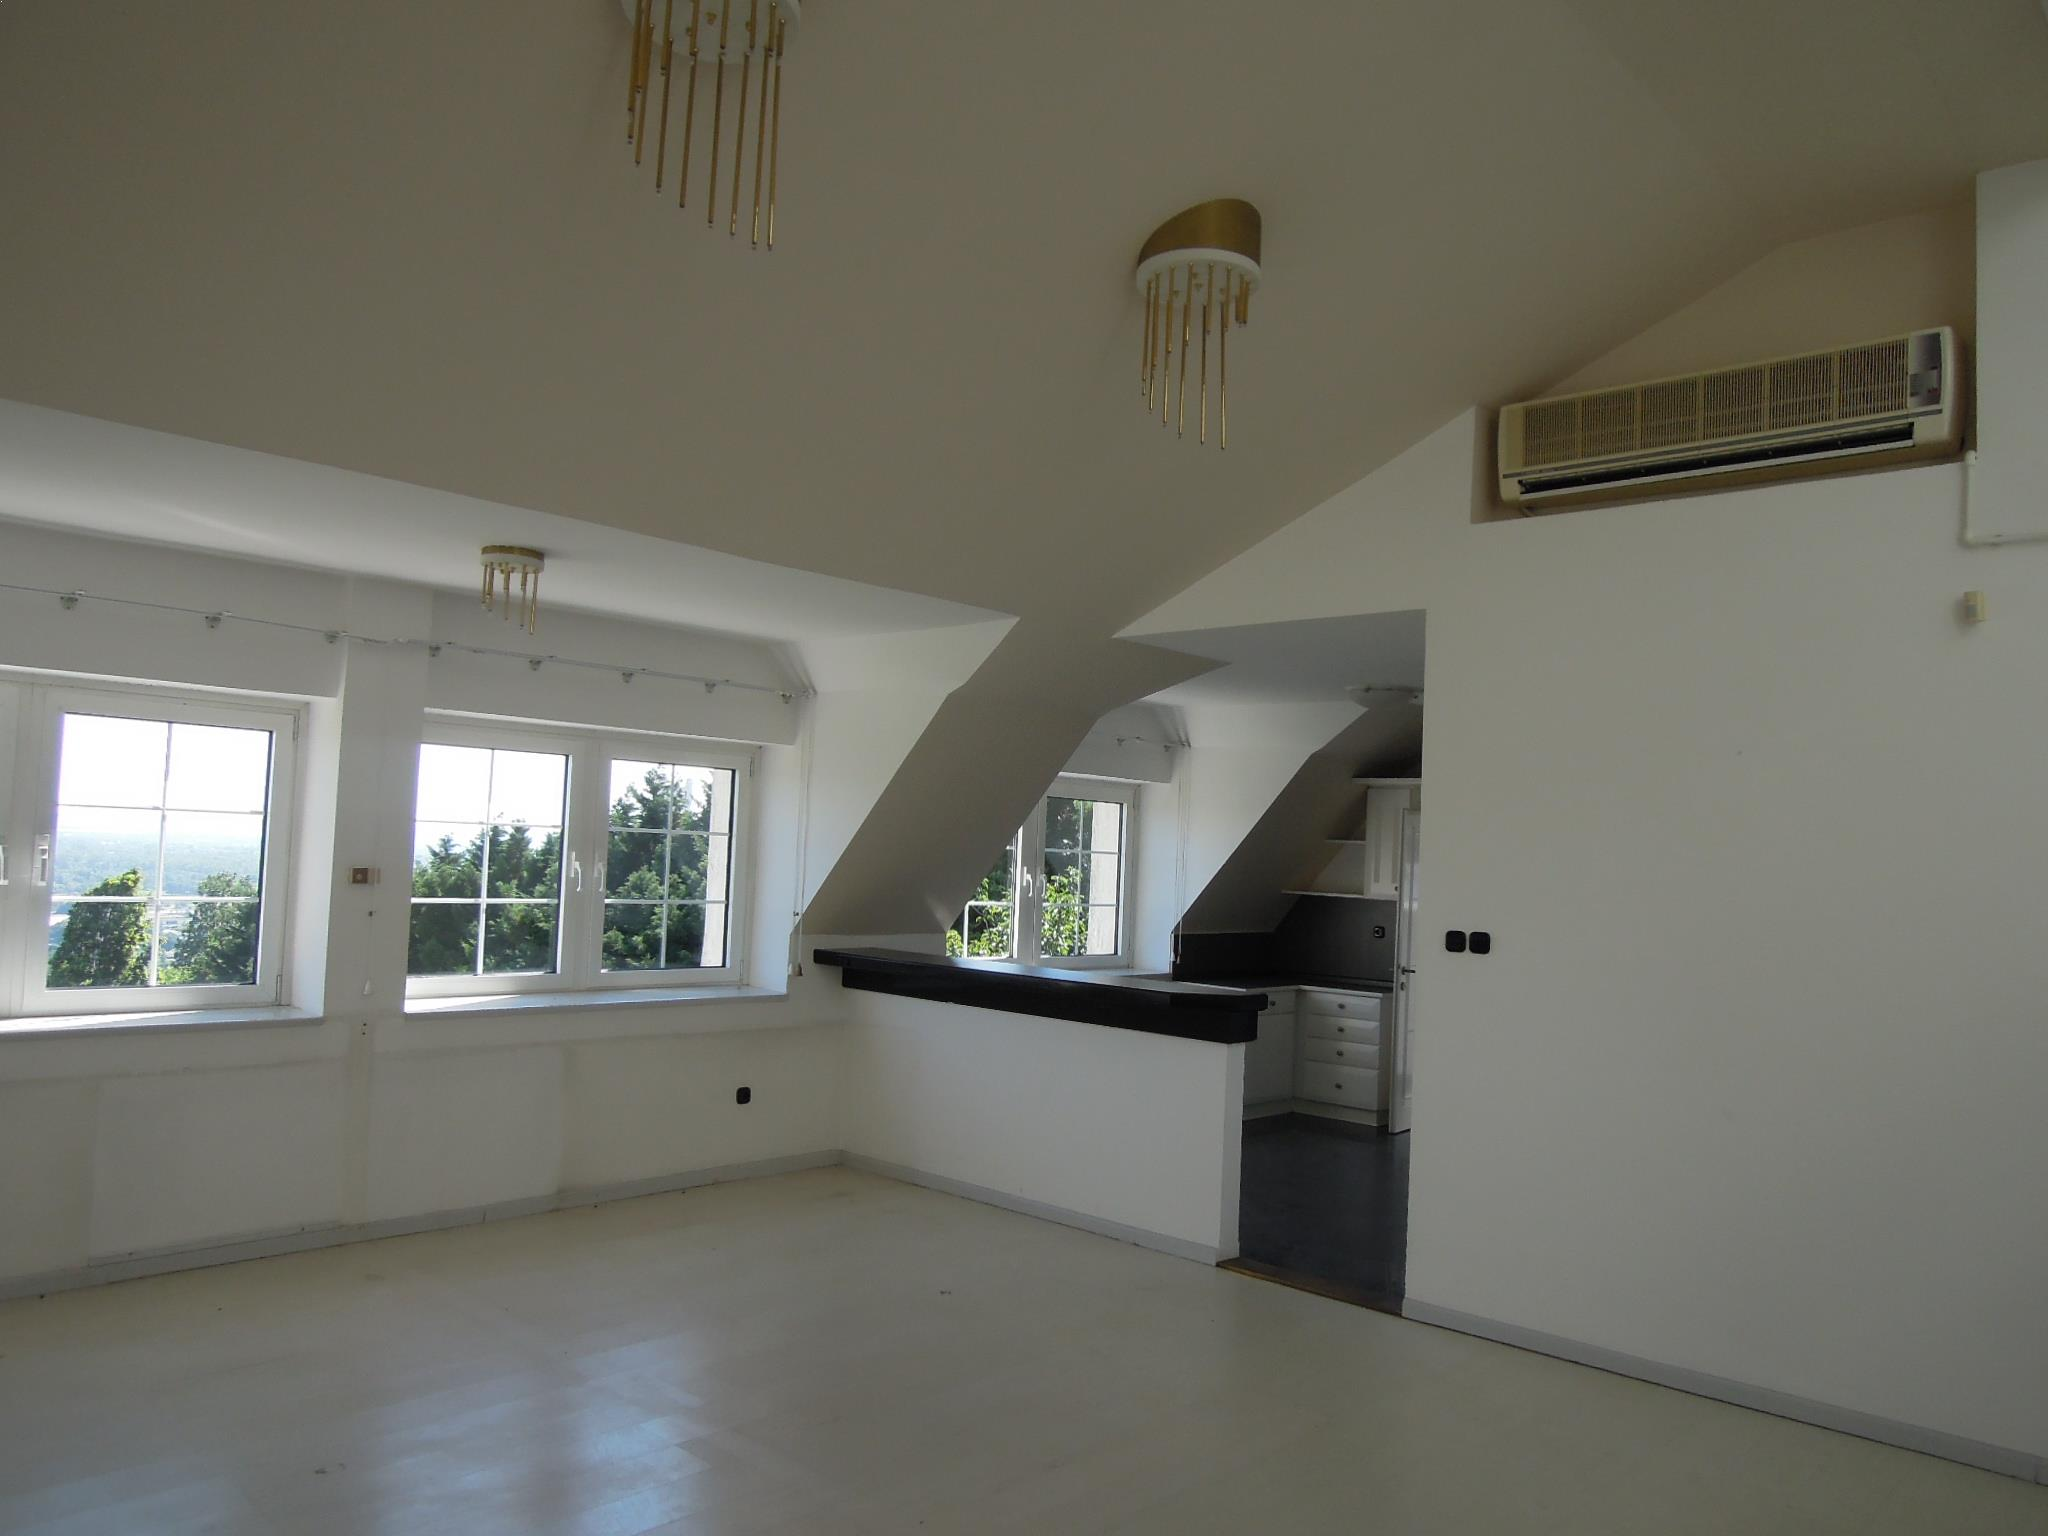 Villa with 10 rooms in Budapest exclusive part is for sale